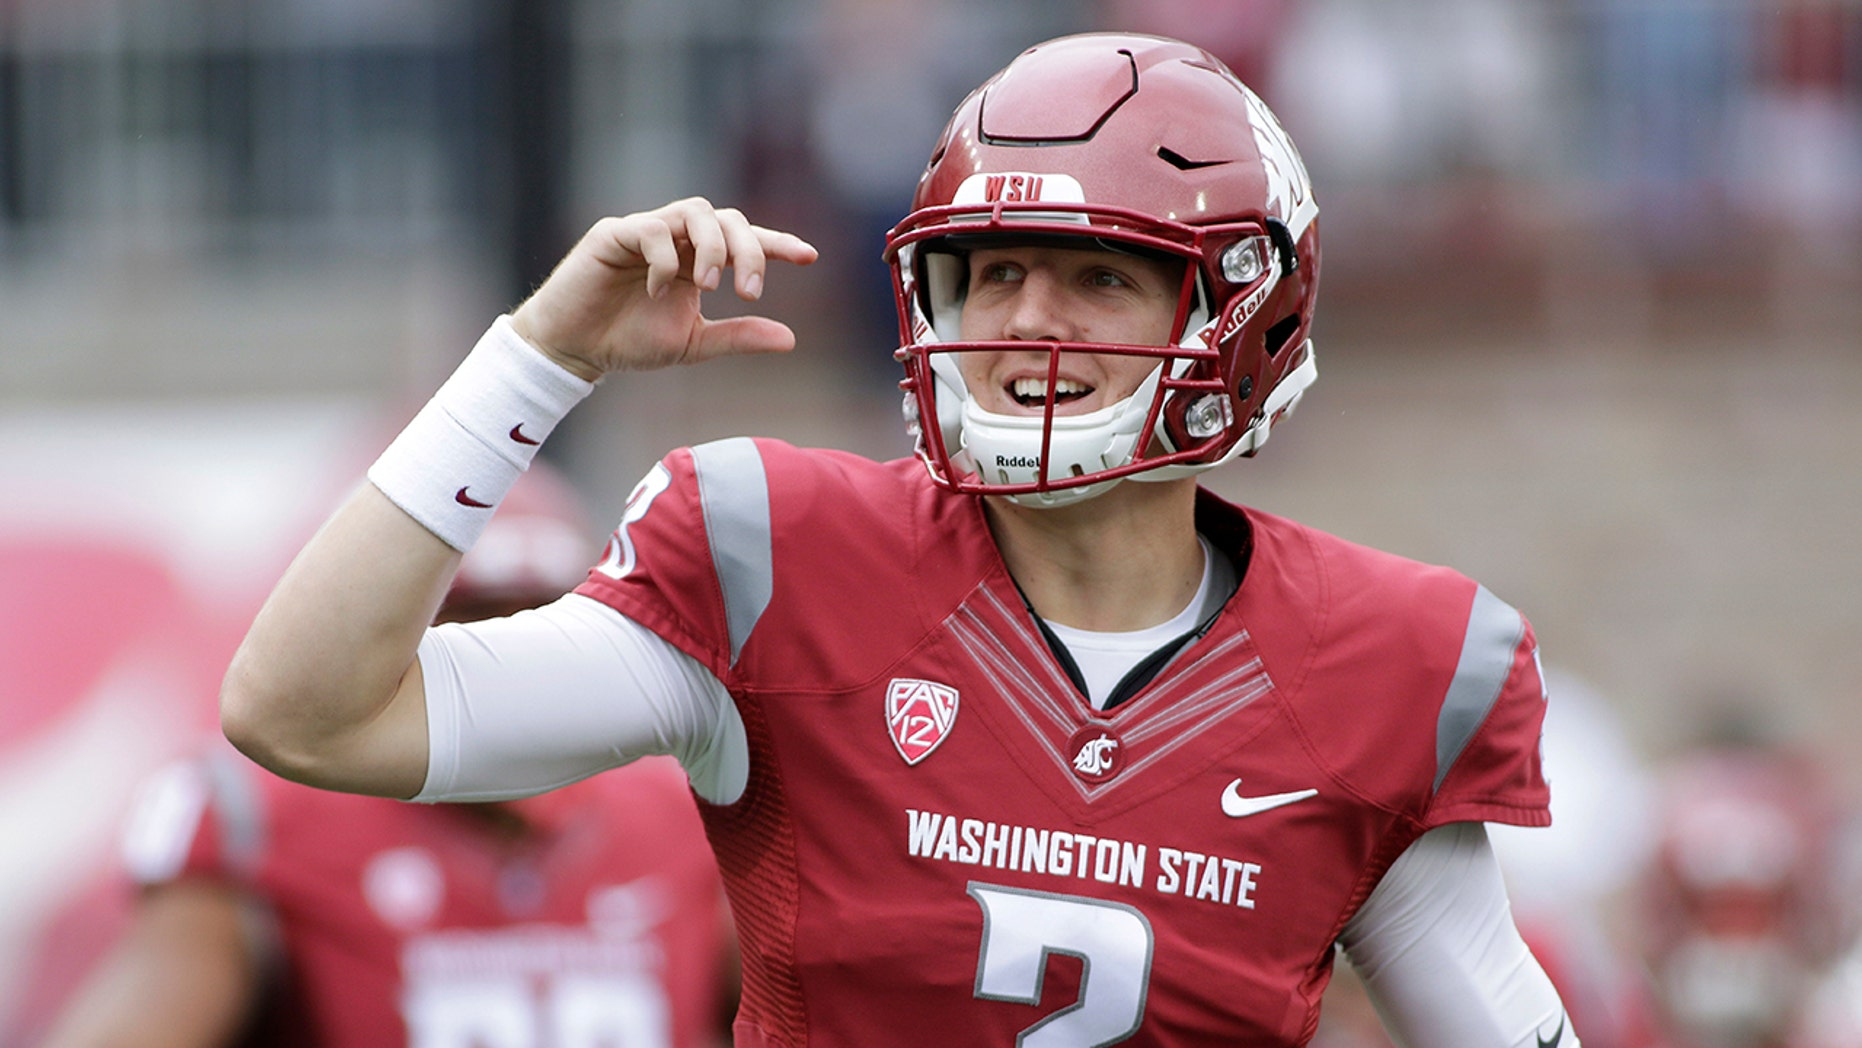 Hilinski's parents said an autopsy indicated that their son had the brain of a 65-year-old, with signs of extensive brain damage known as CTE.